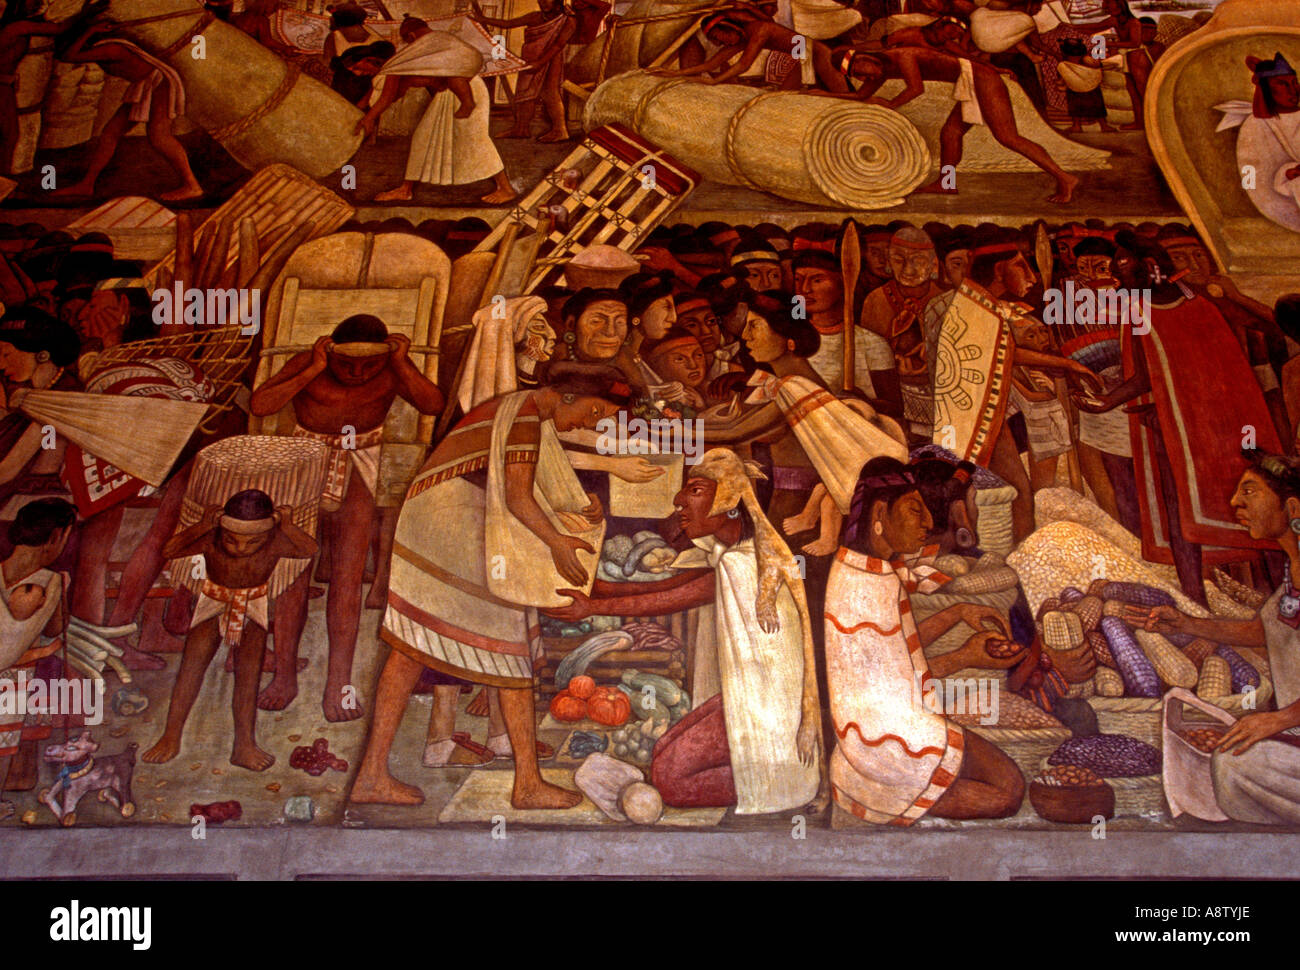 The great tenochtitlan 1945 mural diego rivera for Diego rivera tenochtitlan mural